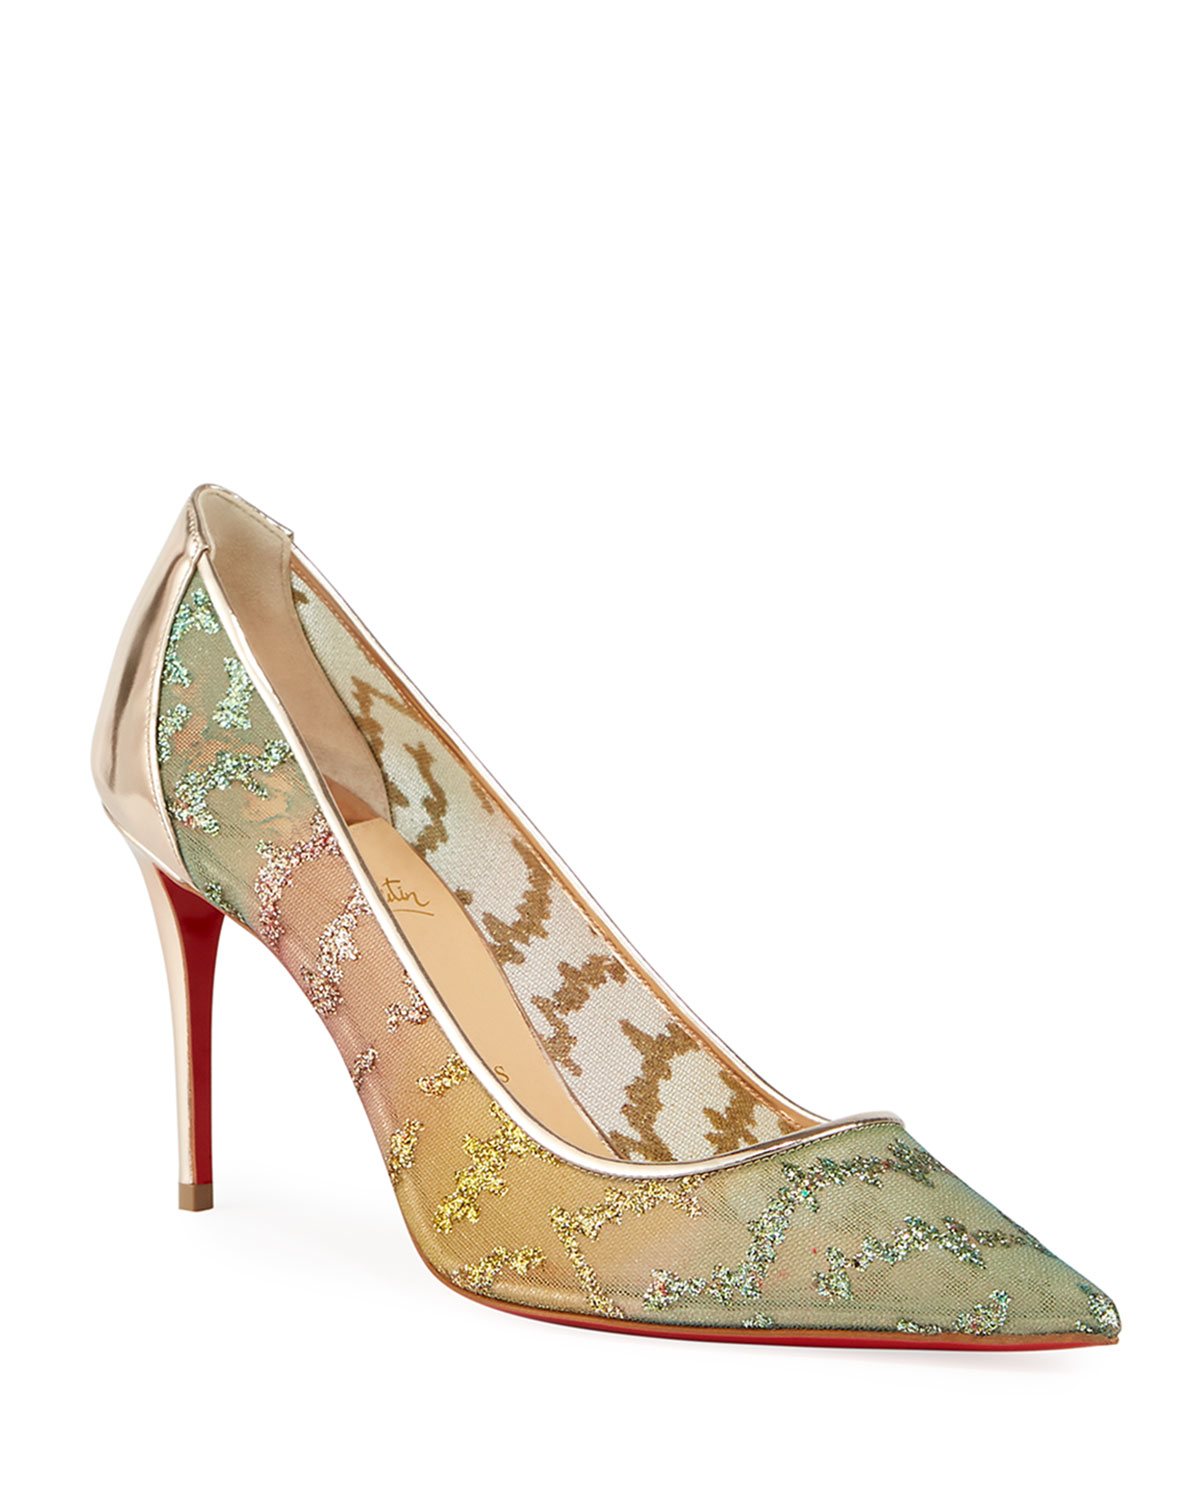 timeless design 66c34 9ac6b Follies Lace Metallic Embroidered Red Sole Pumps